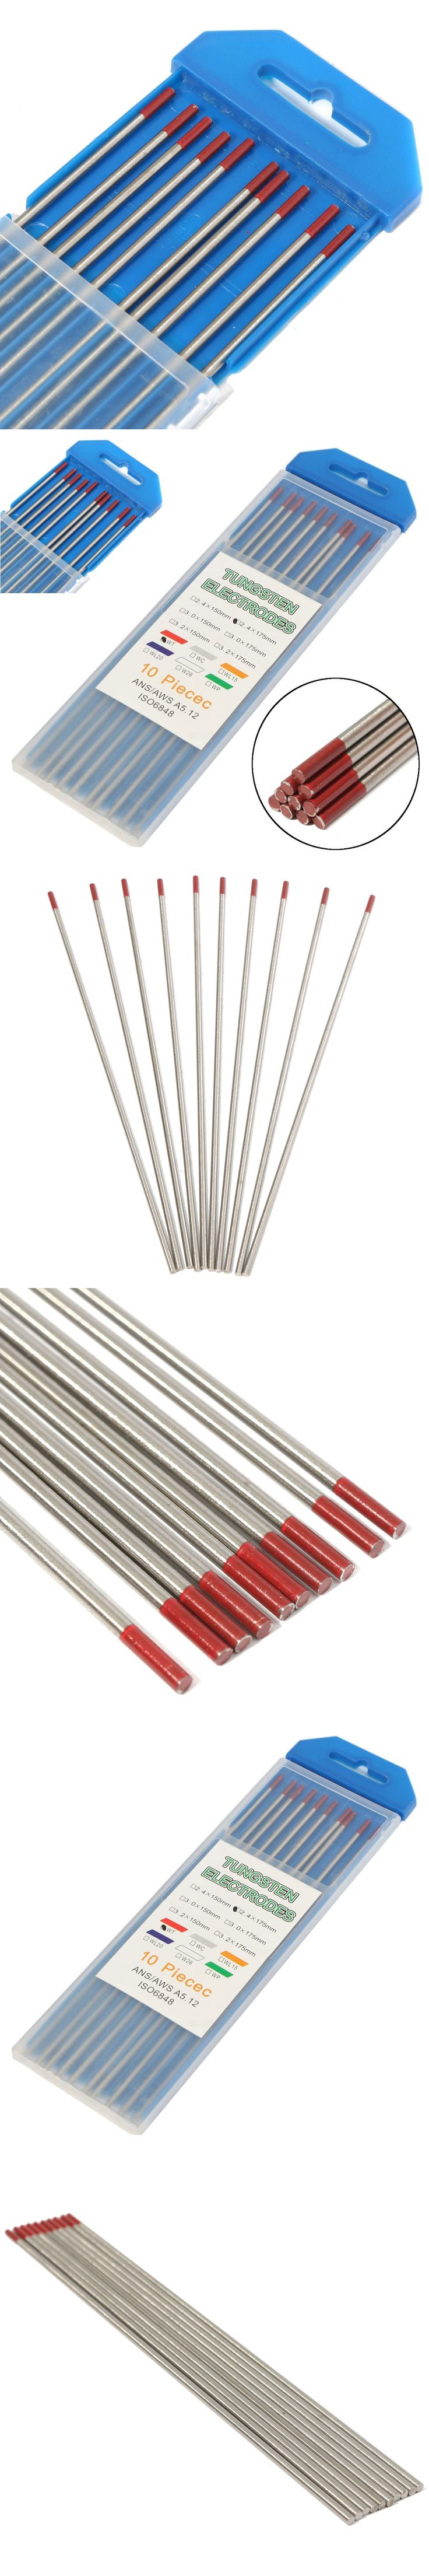 """Best Price Red Tip 3/32"""" x 7""""(2.4x175mm) Thoriated Tungsten WT20 2% Welding TIG Electrode Lower Electronic Functions Welding Rod"""